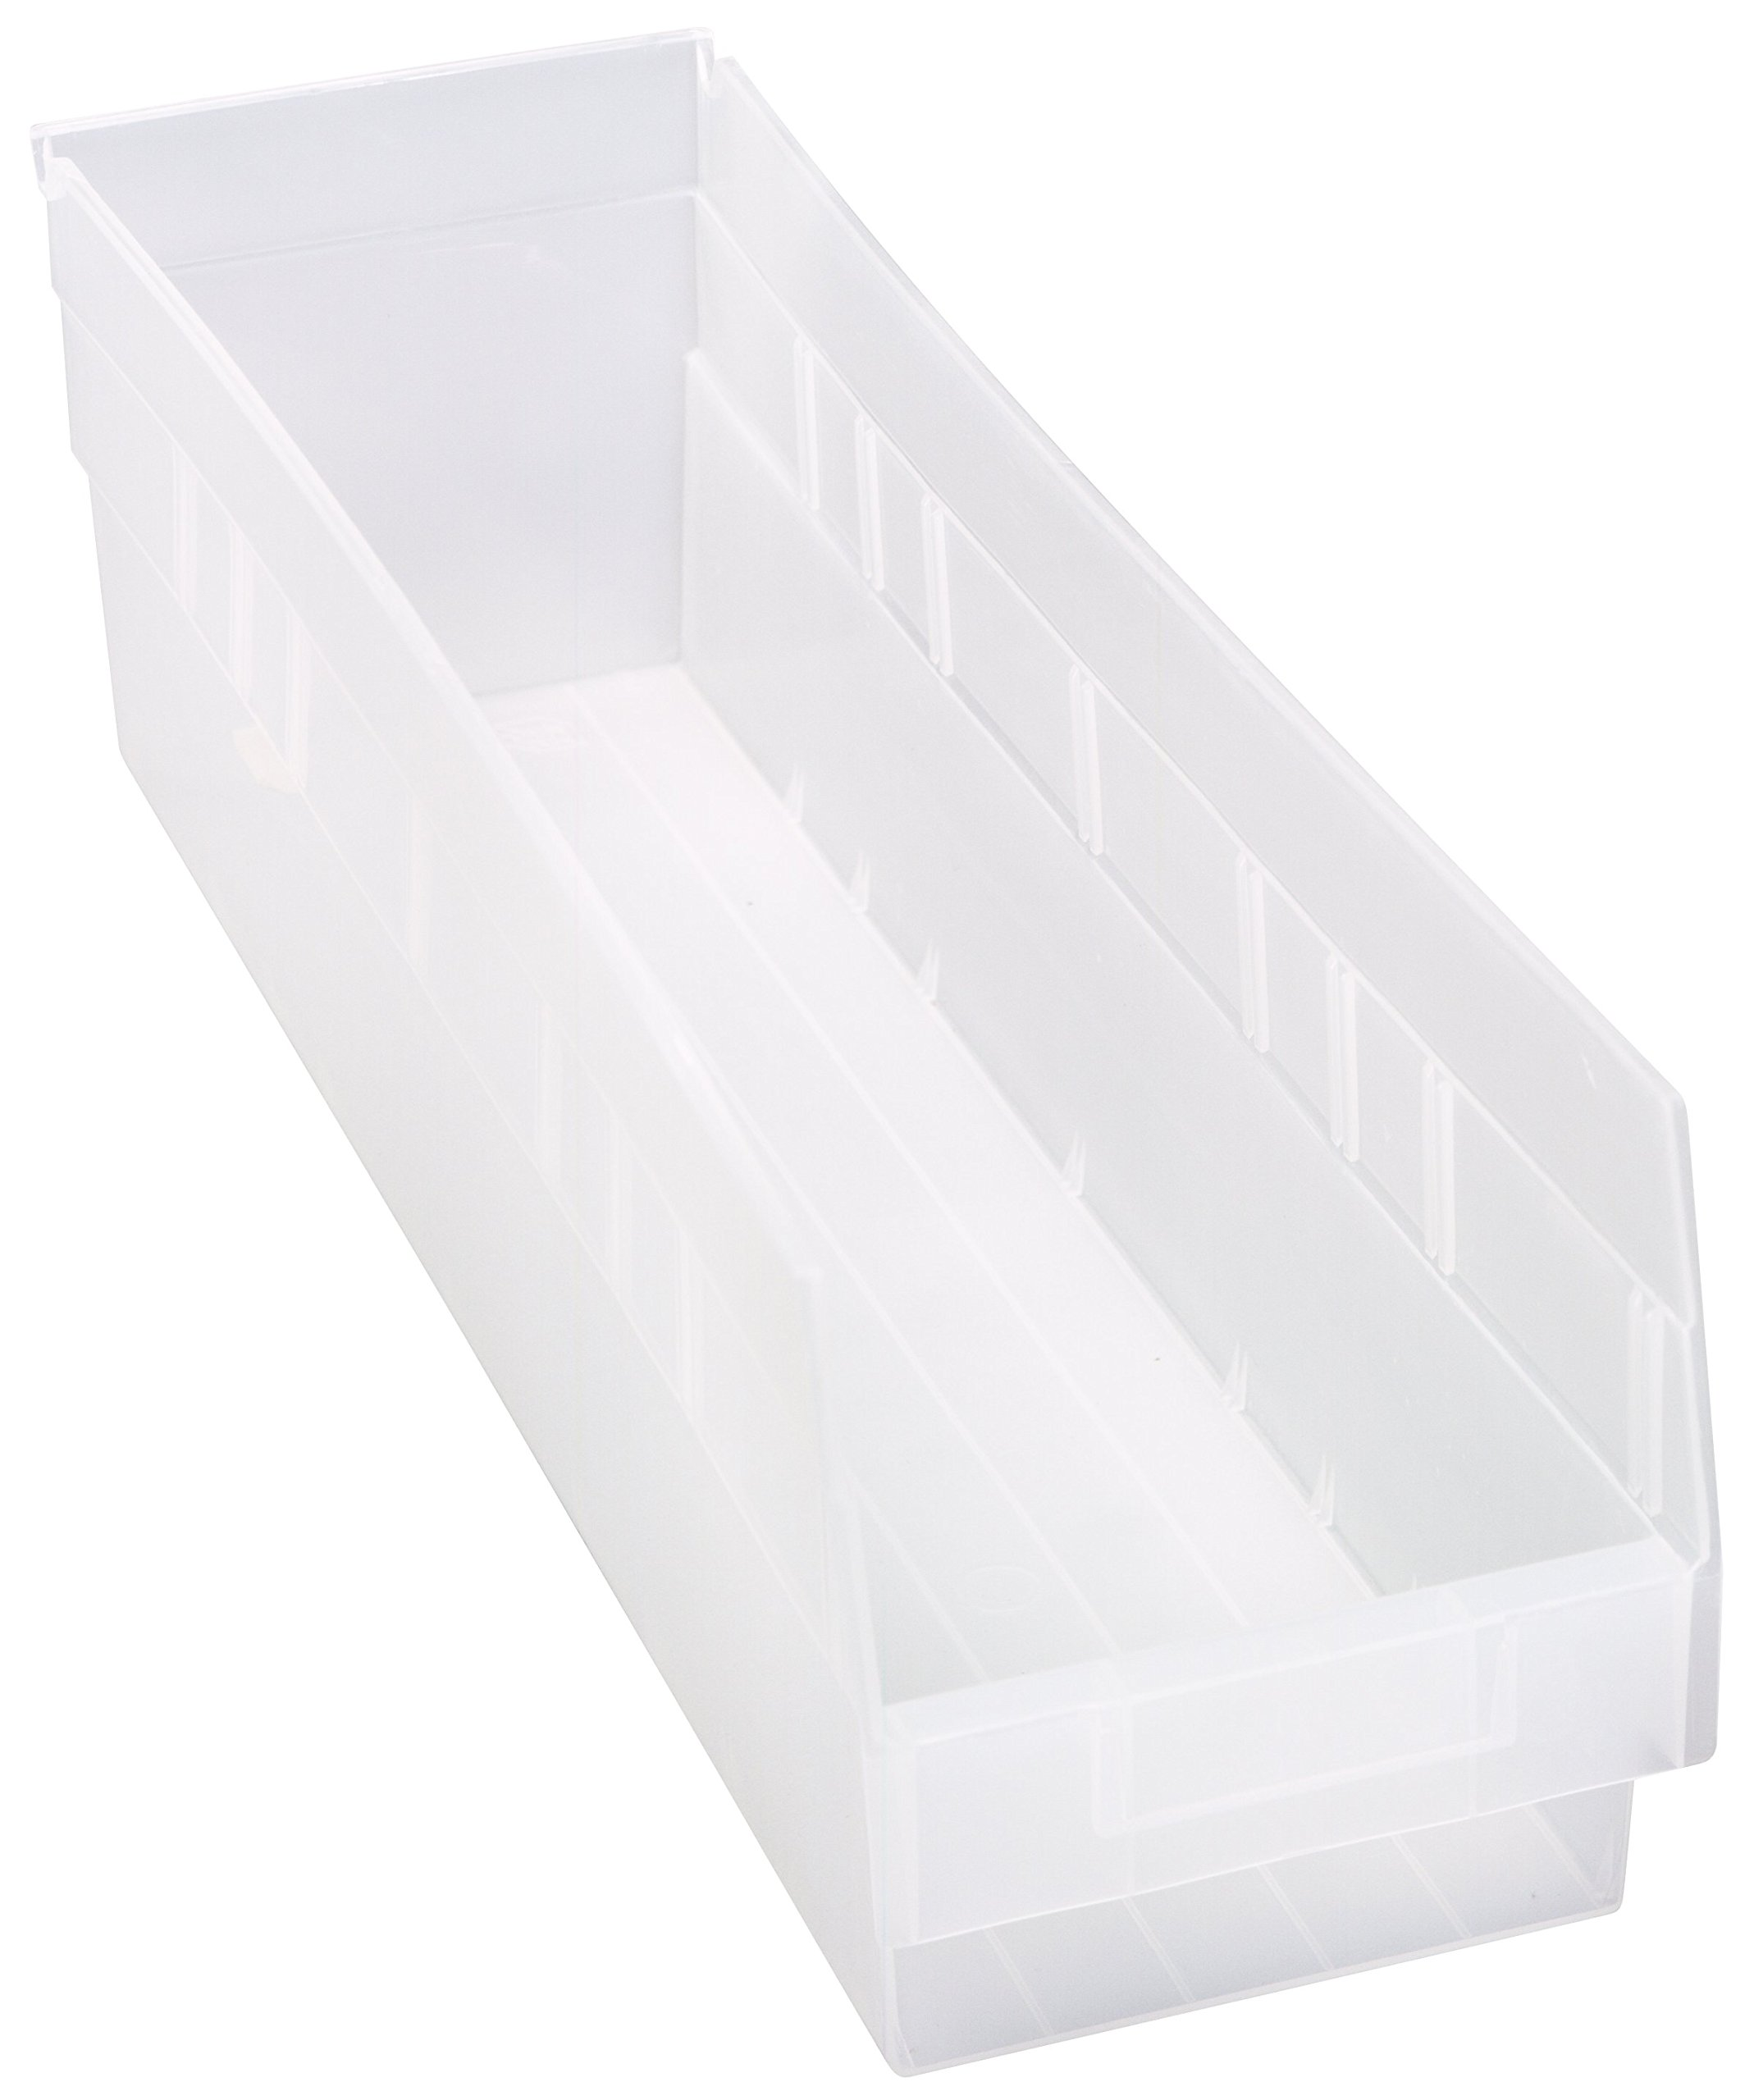 Quantum QSB206CL Store More Shelf Bin, 23-5/8'' Length x 6-5/8'' Width x 6'' Height, Clear, Pack of 8 by Quantum